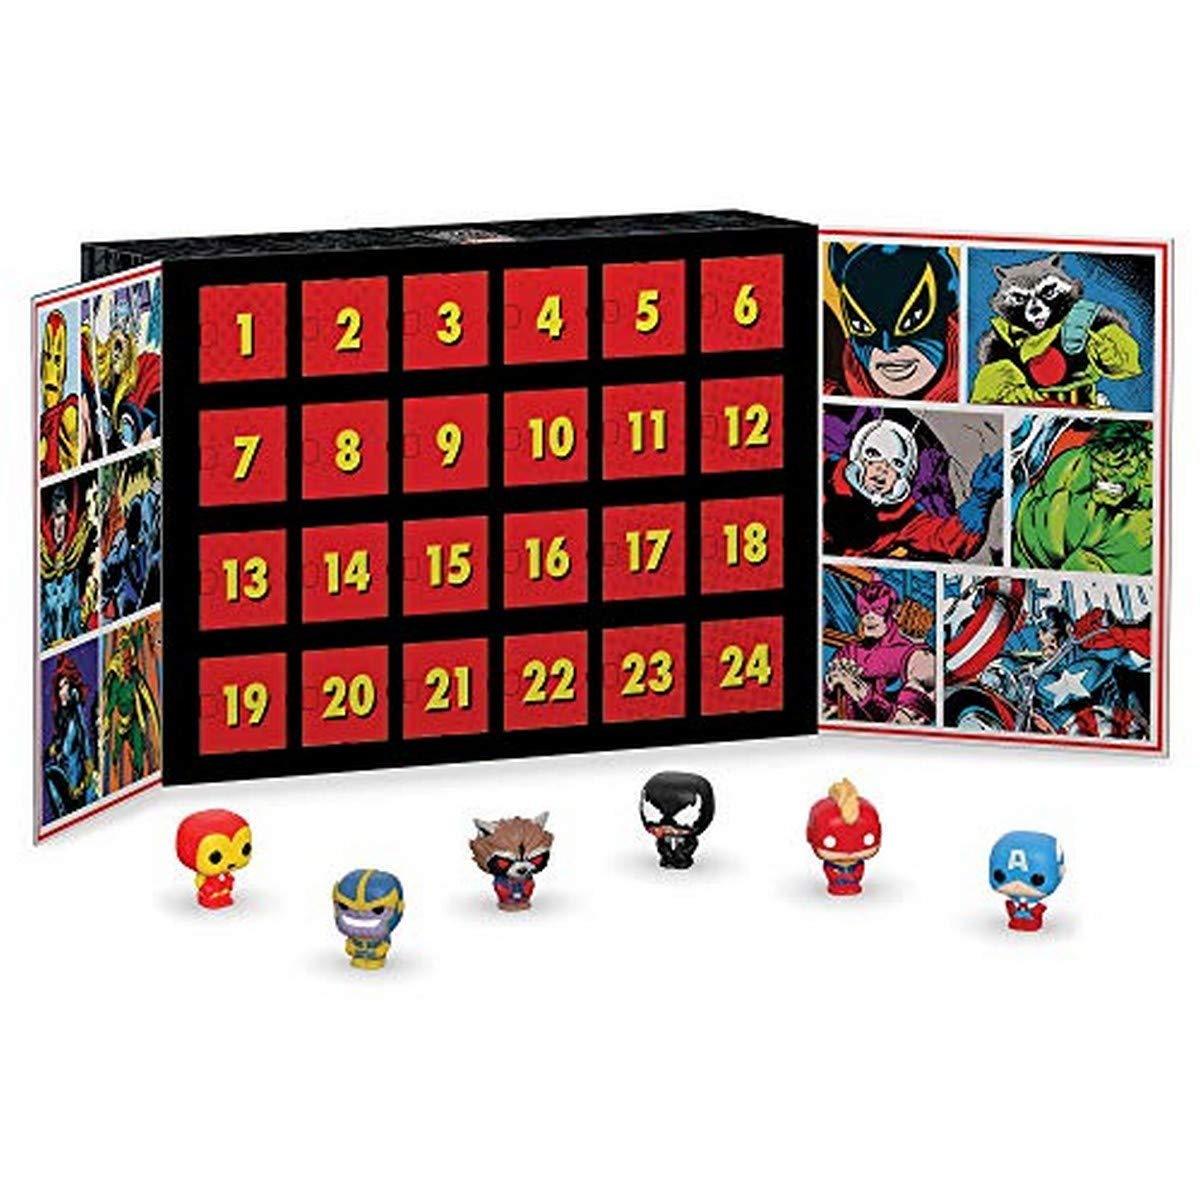 Marvel Advents Kalender mit Pocket-Pops Sammelfiguren Bild